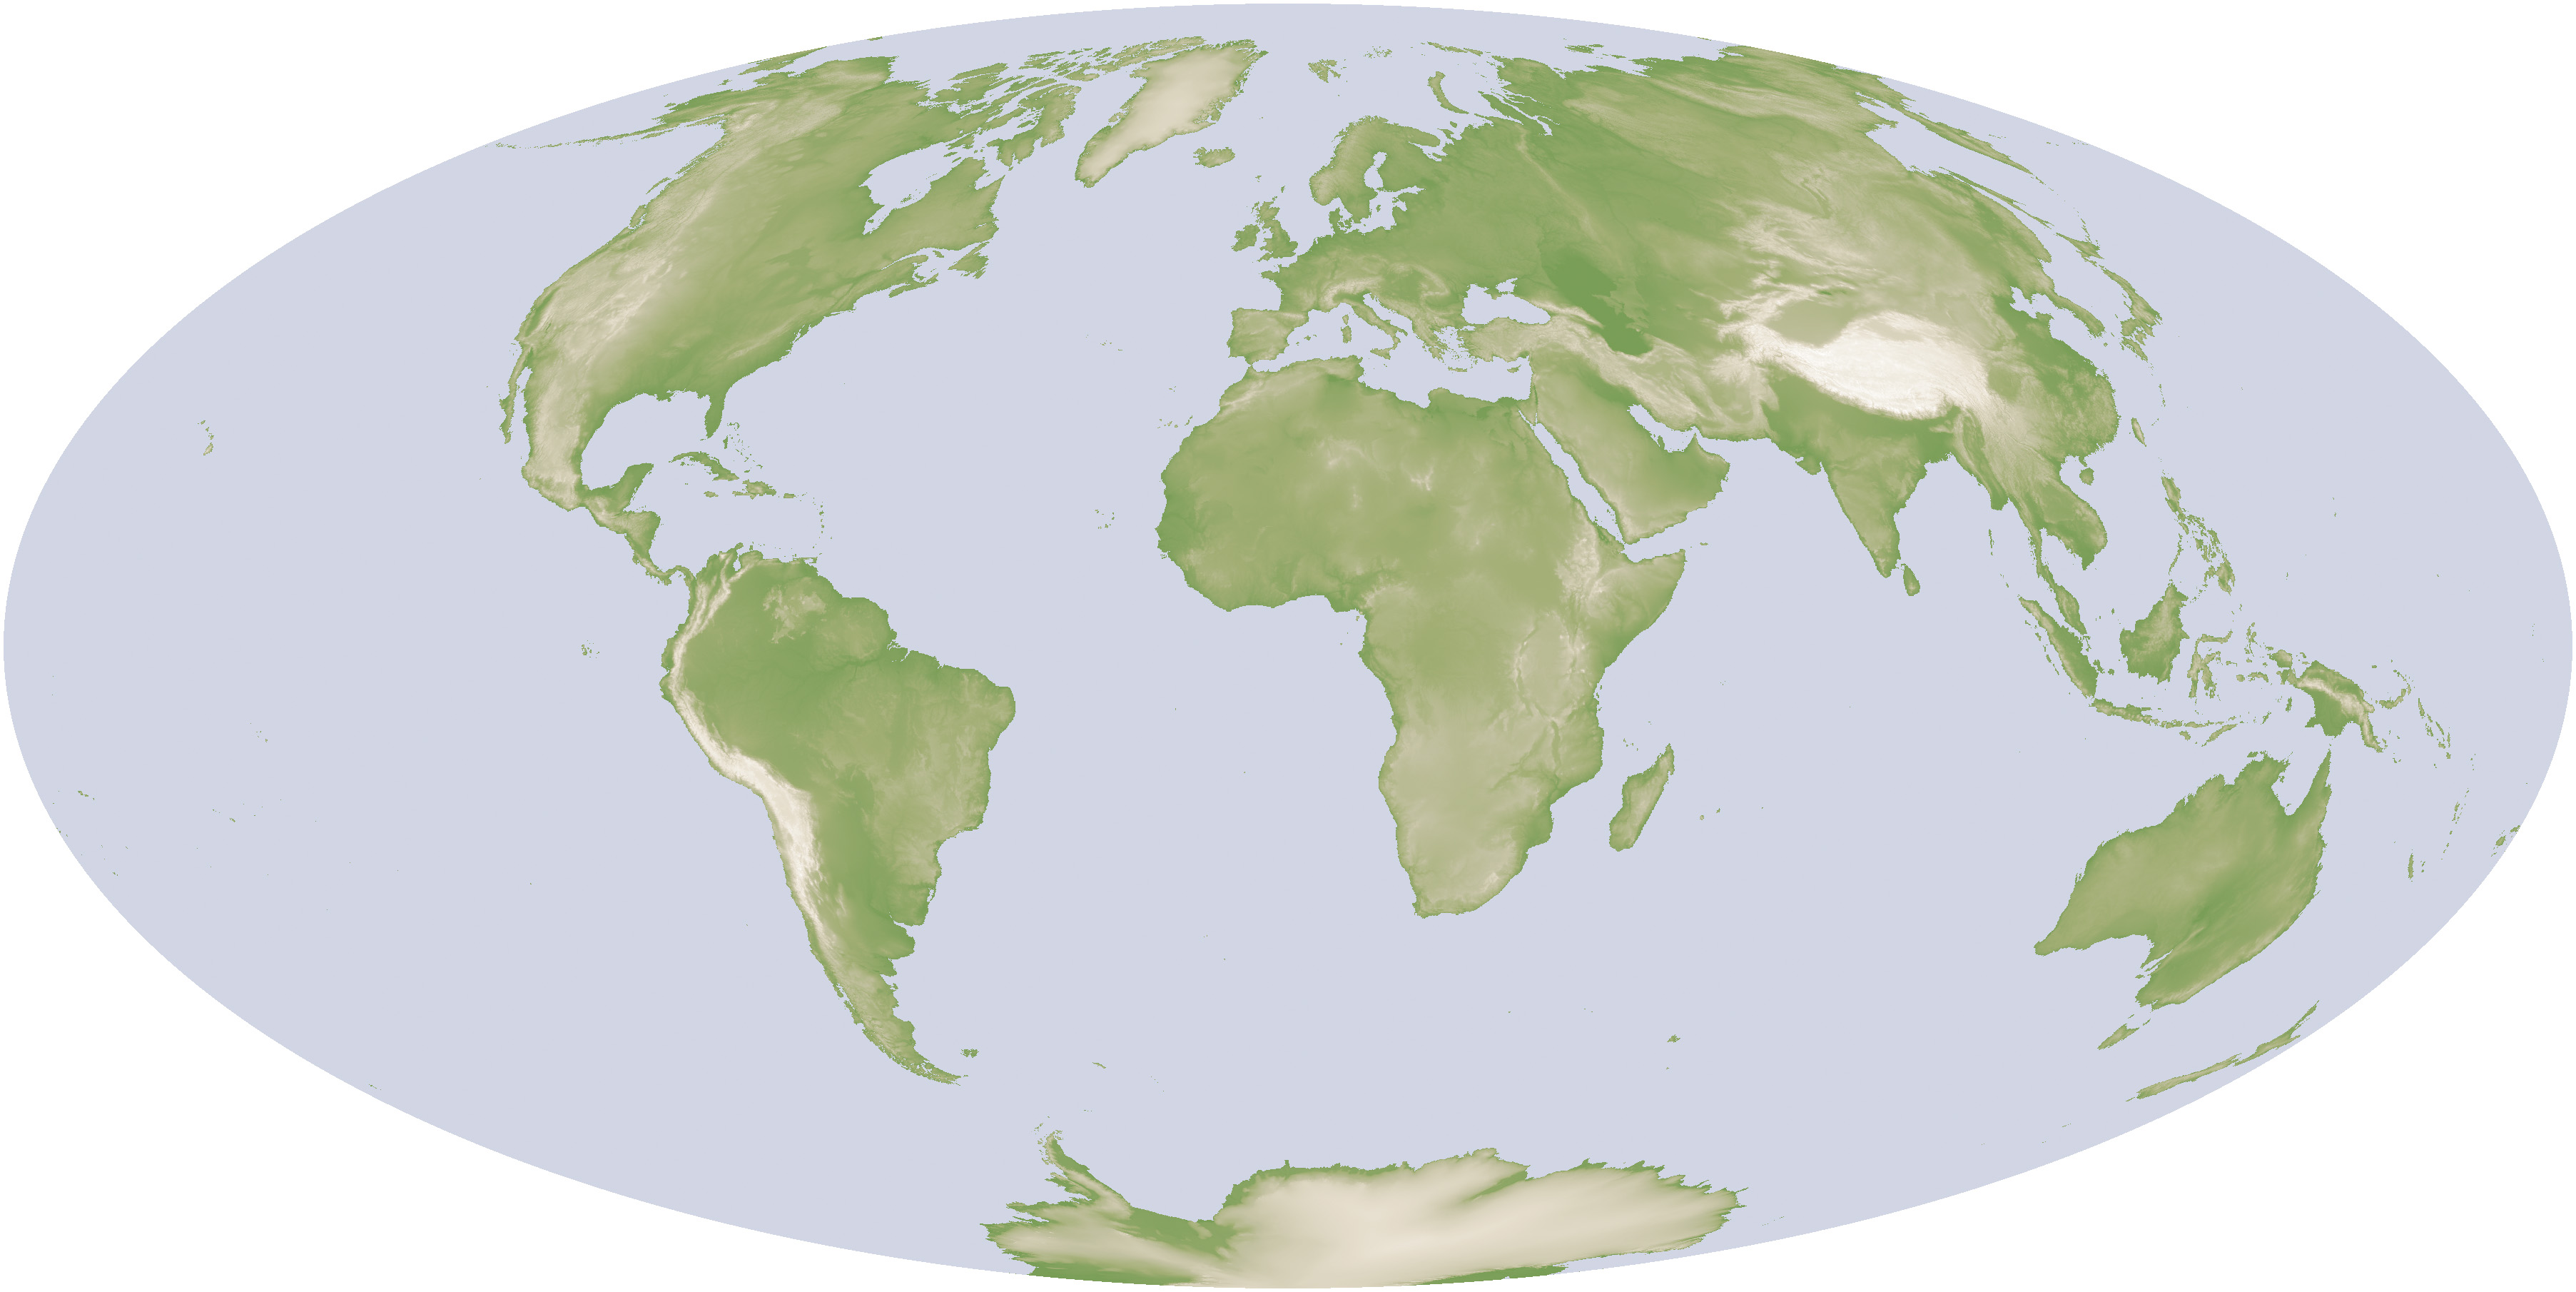 global map of elevation derived from srtm data